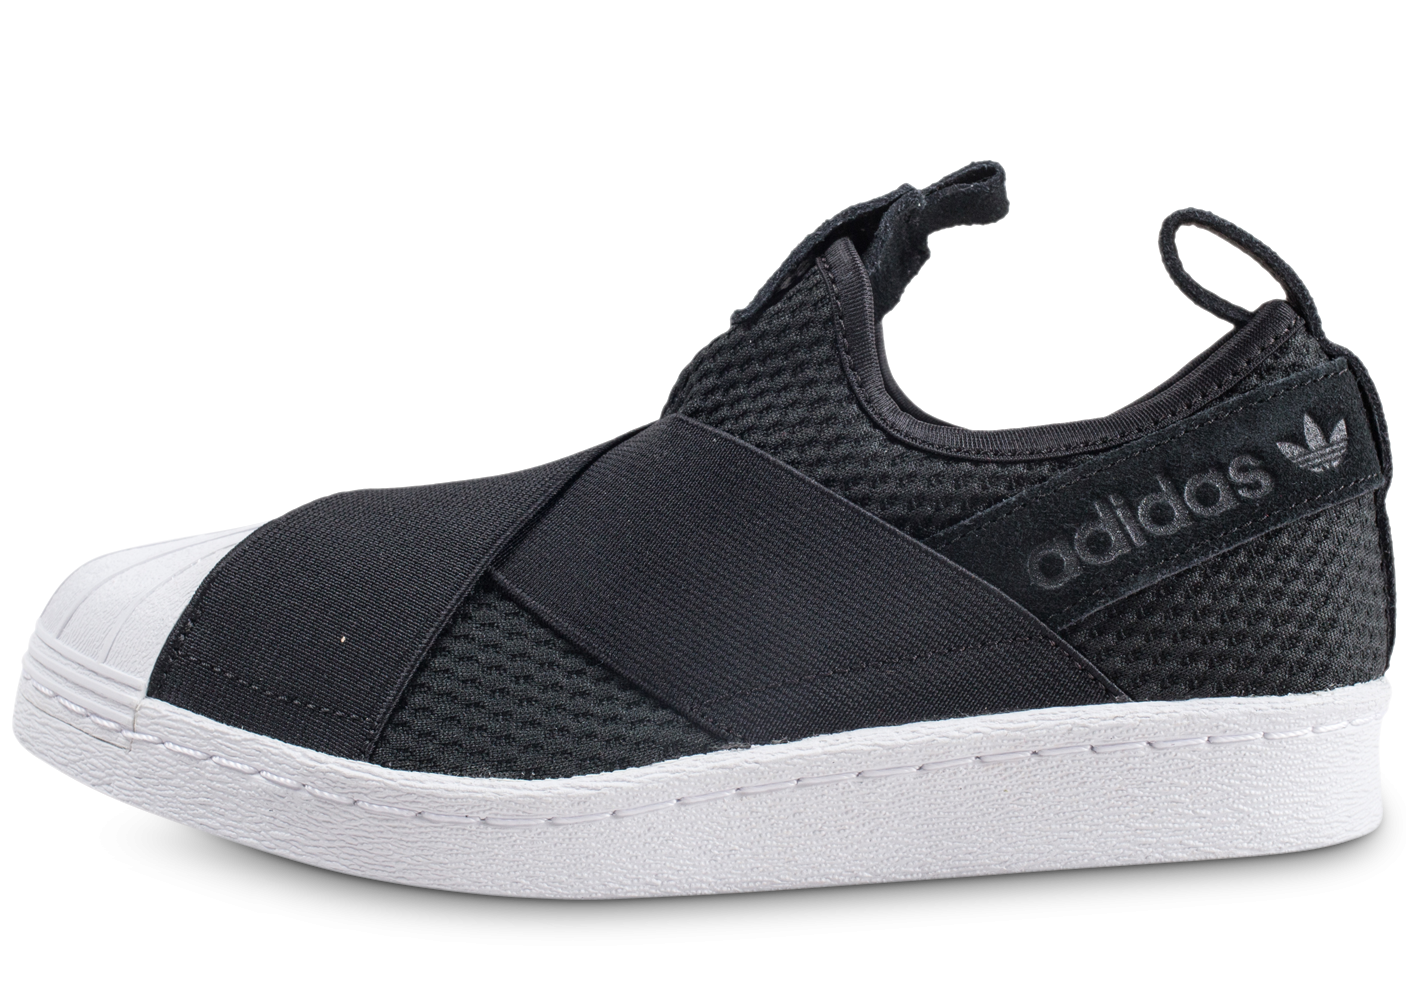 nouveau style c3458 3c65f adidas Superstar Slip-on core black et blanc femme